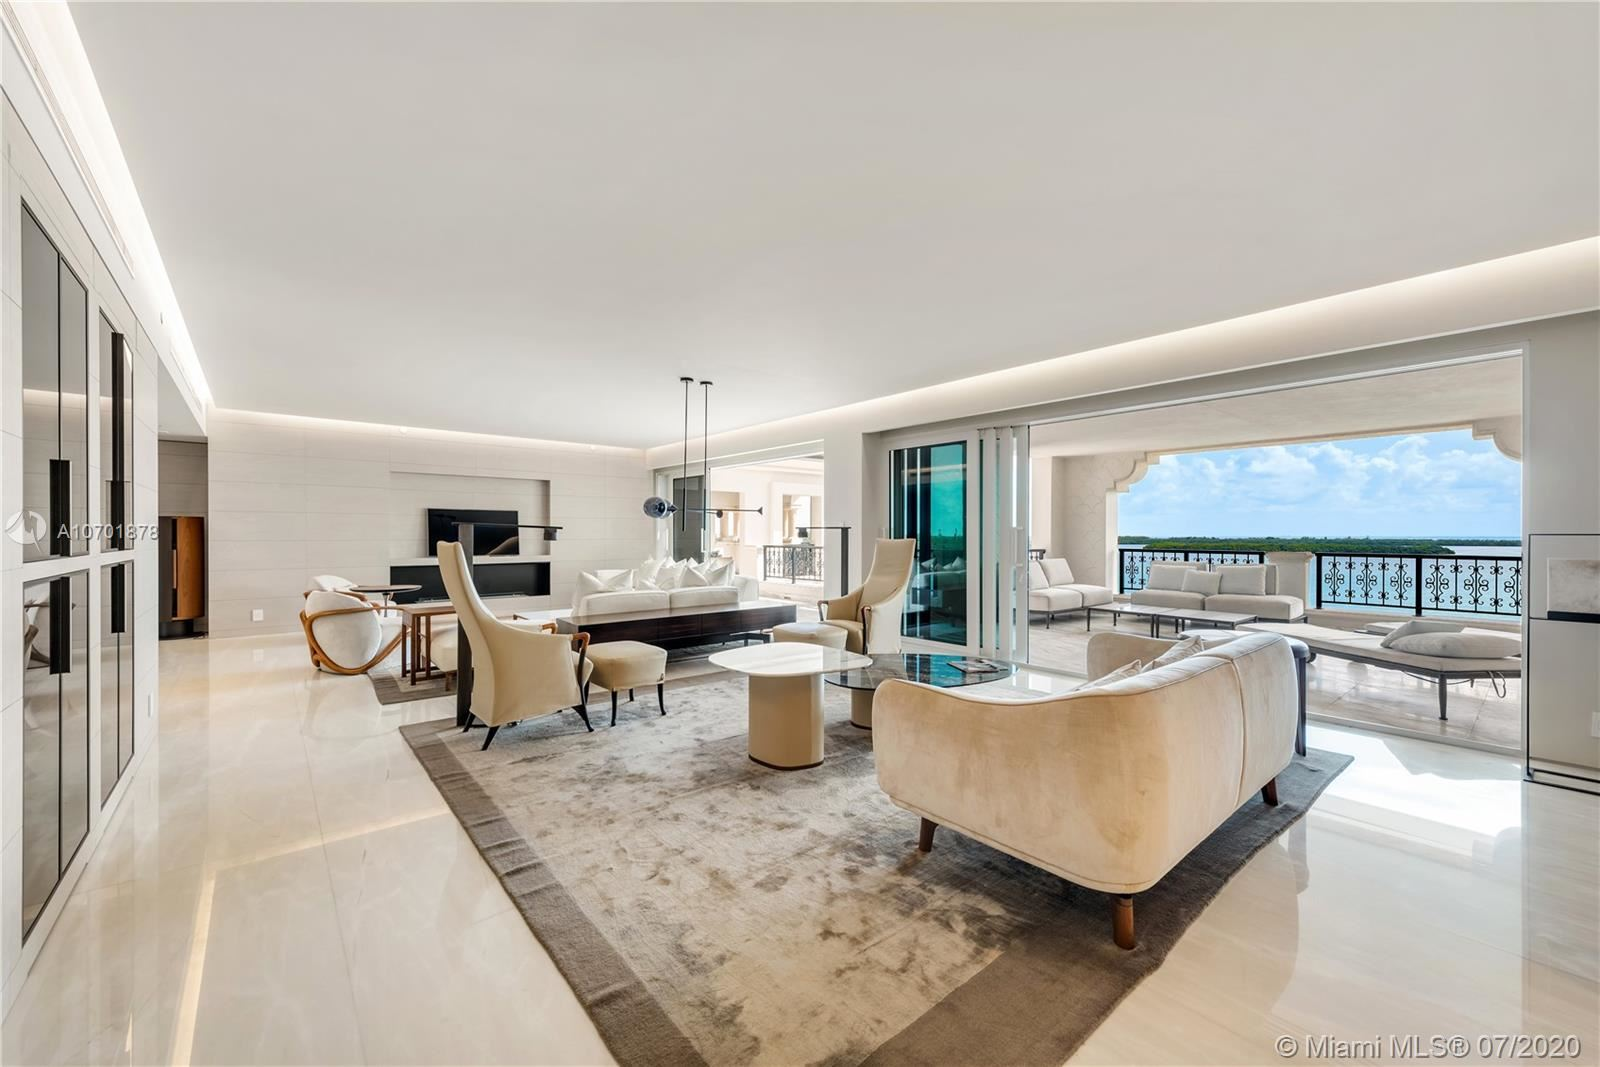 Photo 6 of Listing MLS a10701878 in 5292 Fisher Island Dr #5292 Miami FL 33109